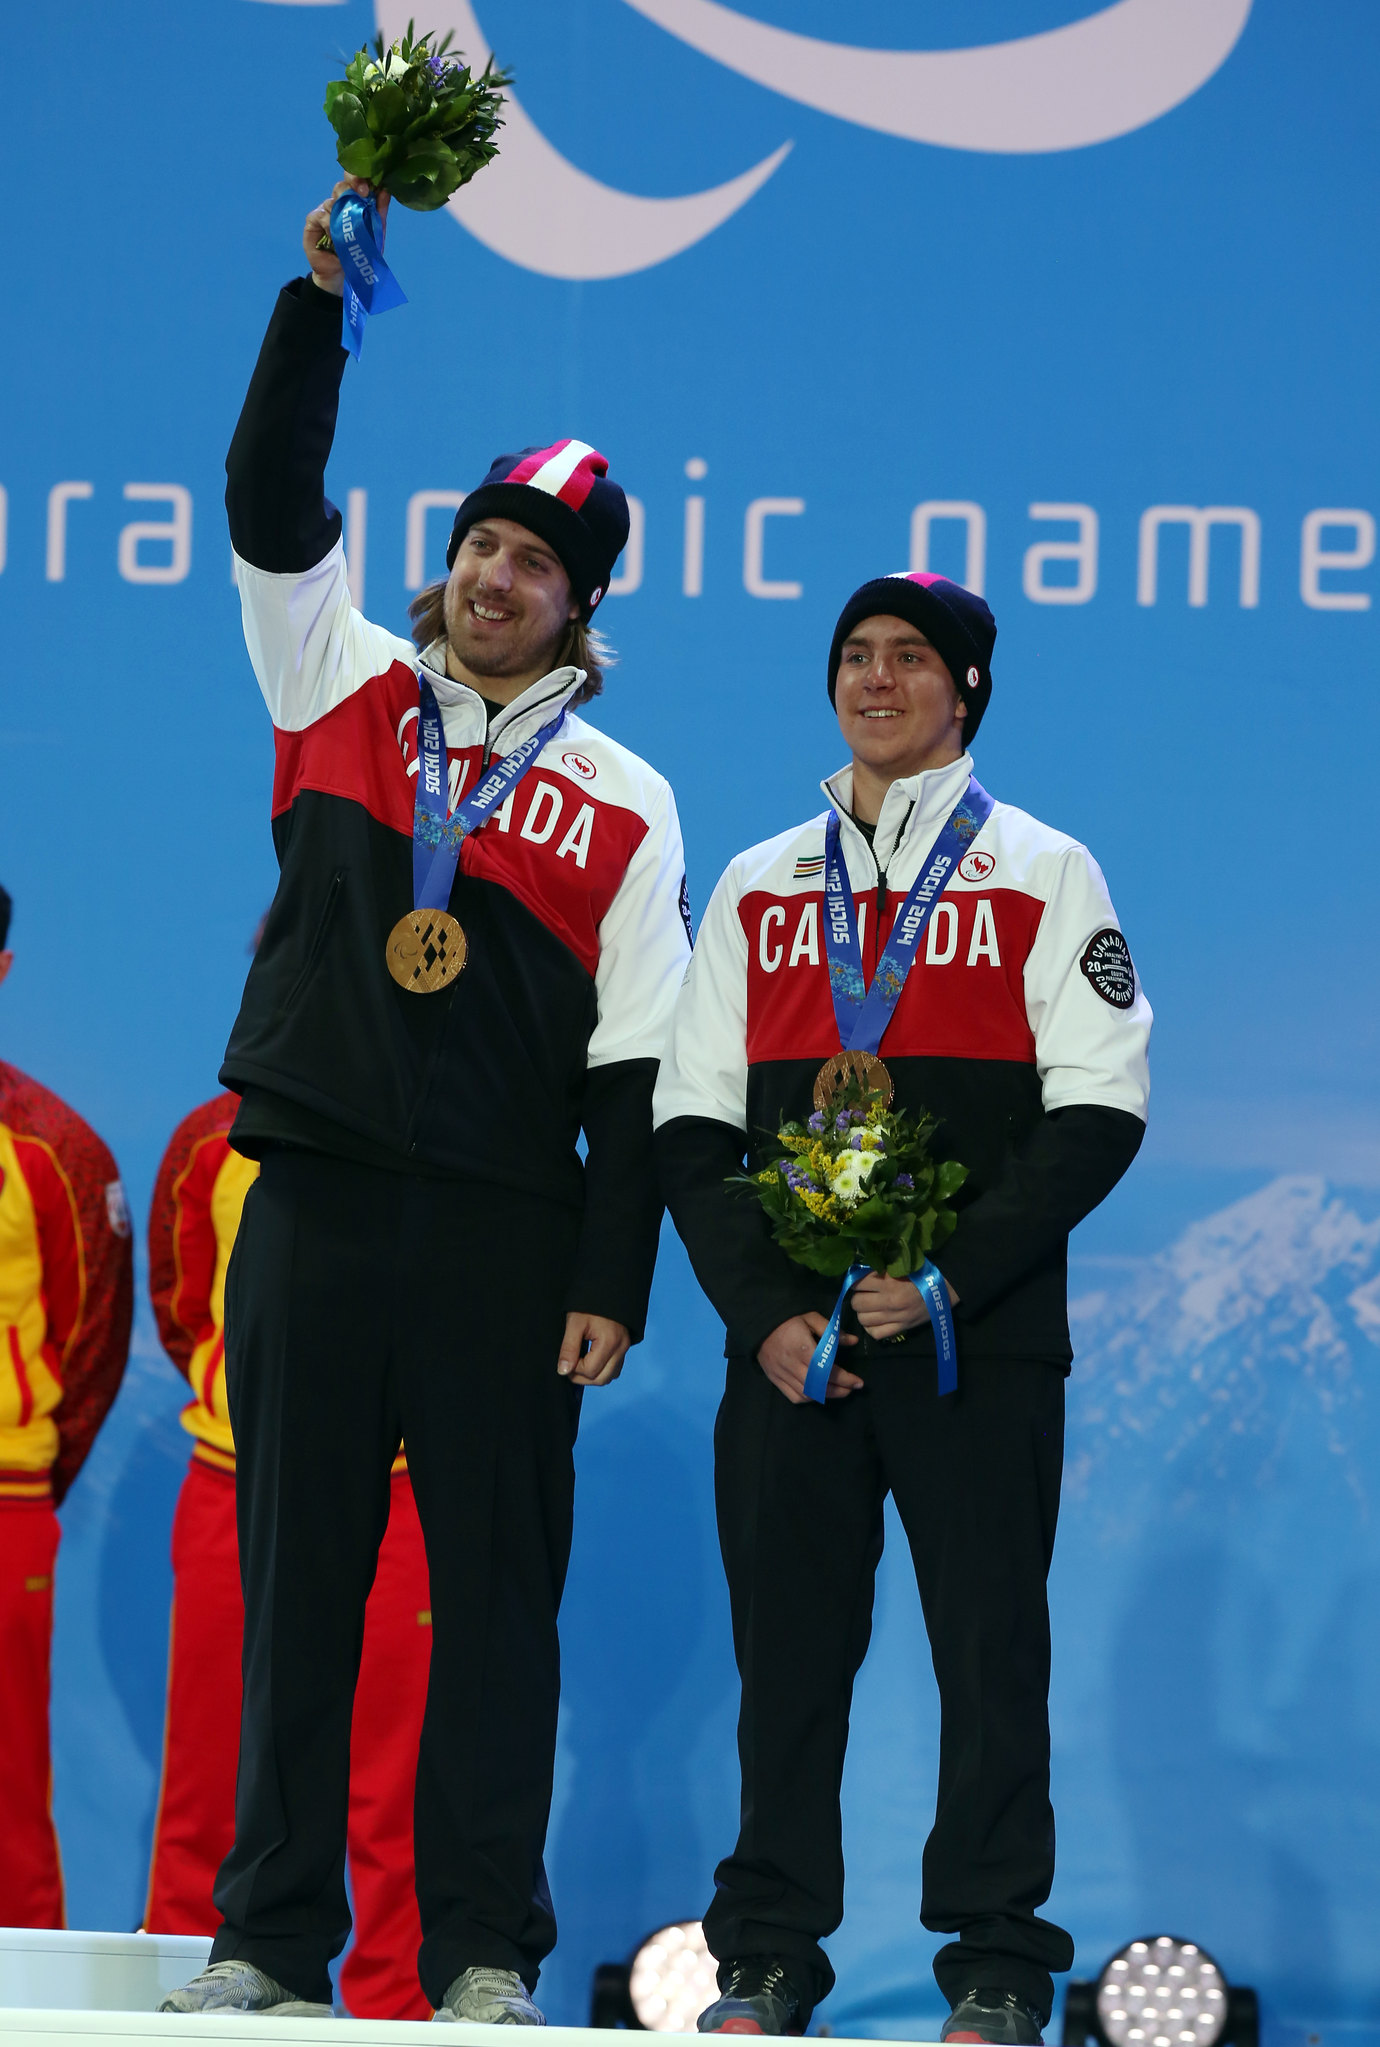 Mac and Robin celebrate Downhill bronze at the Paralympic Winter Games in Sochi, RUS